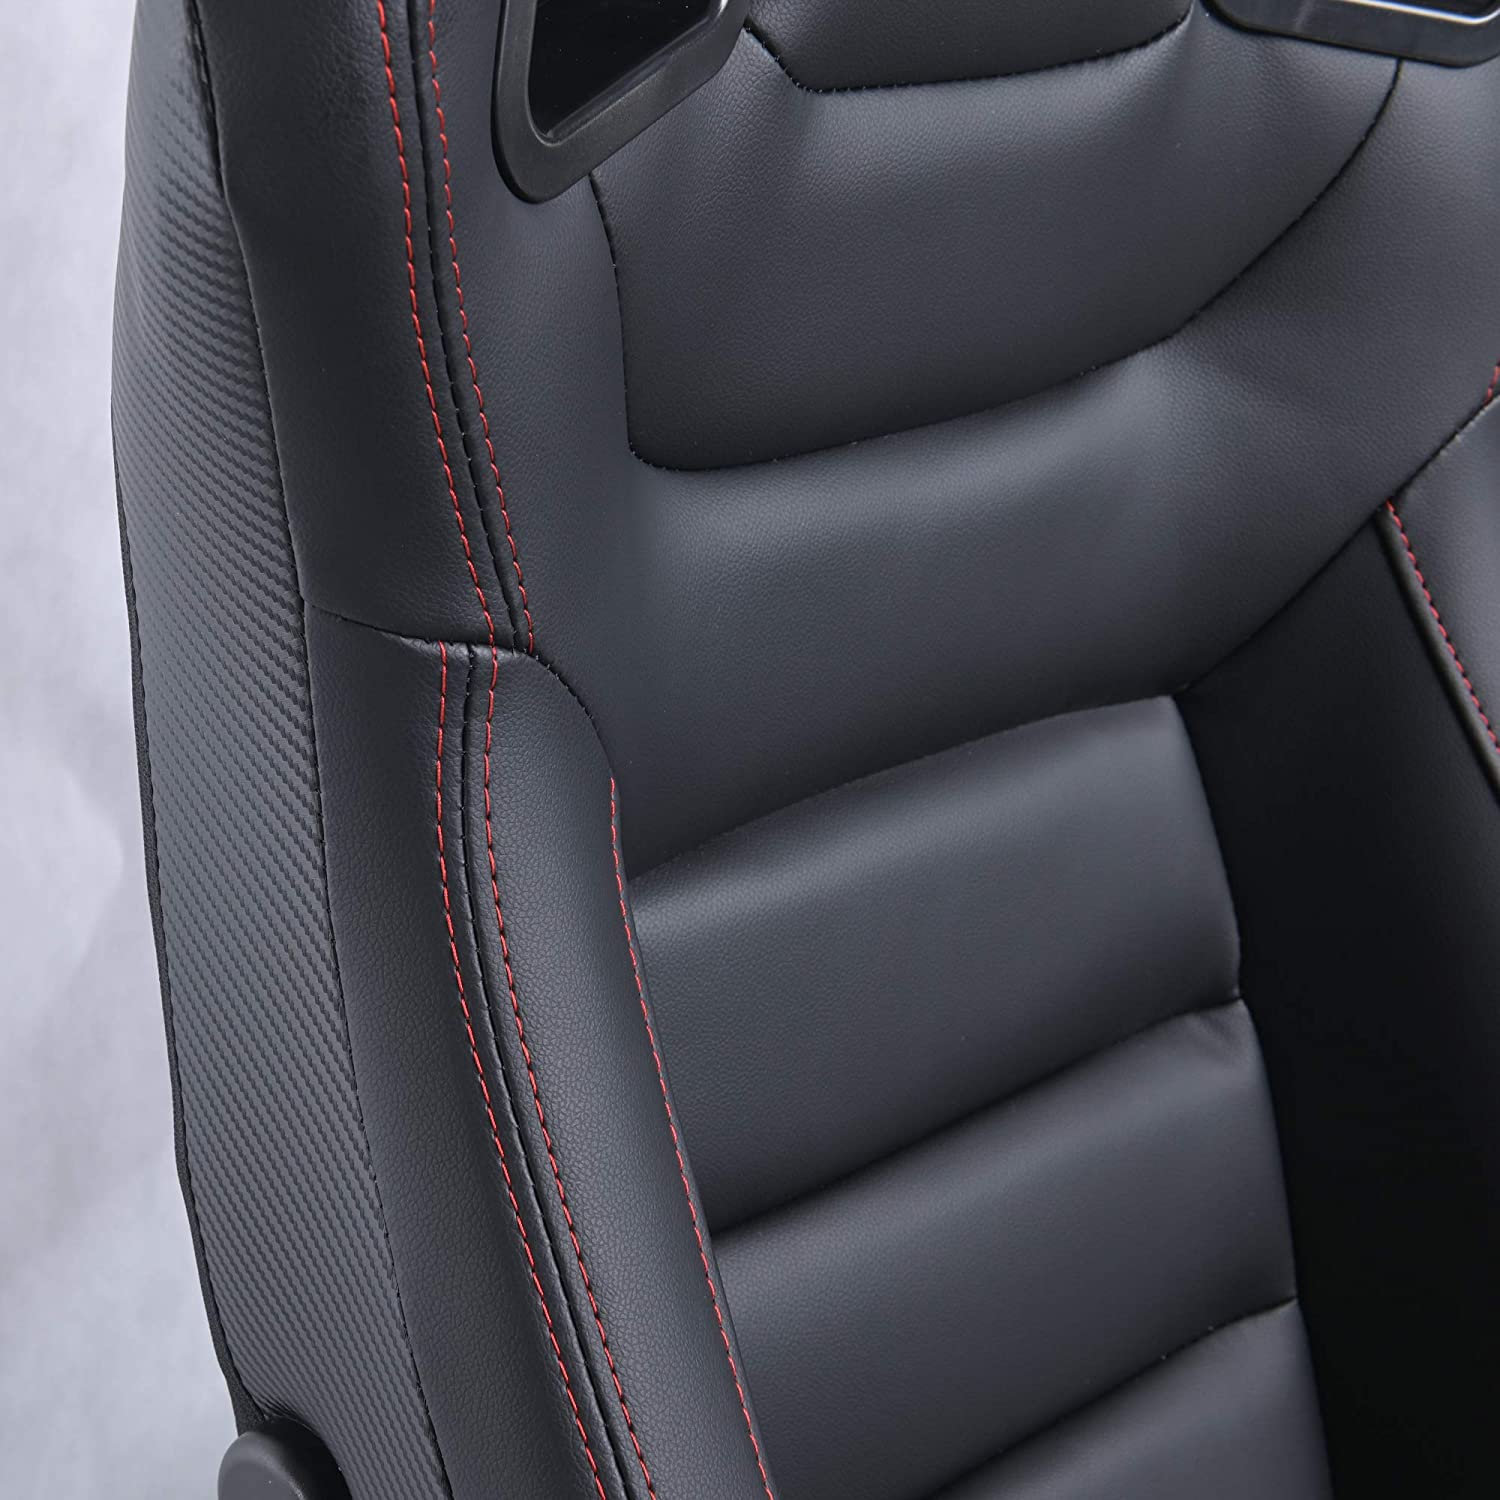 Pair of PVC Leather Racing Bucket Seats with Dual Sliders Racing Seats Black Ship from USA Warehouse